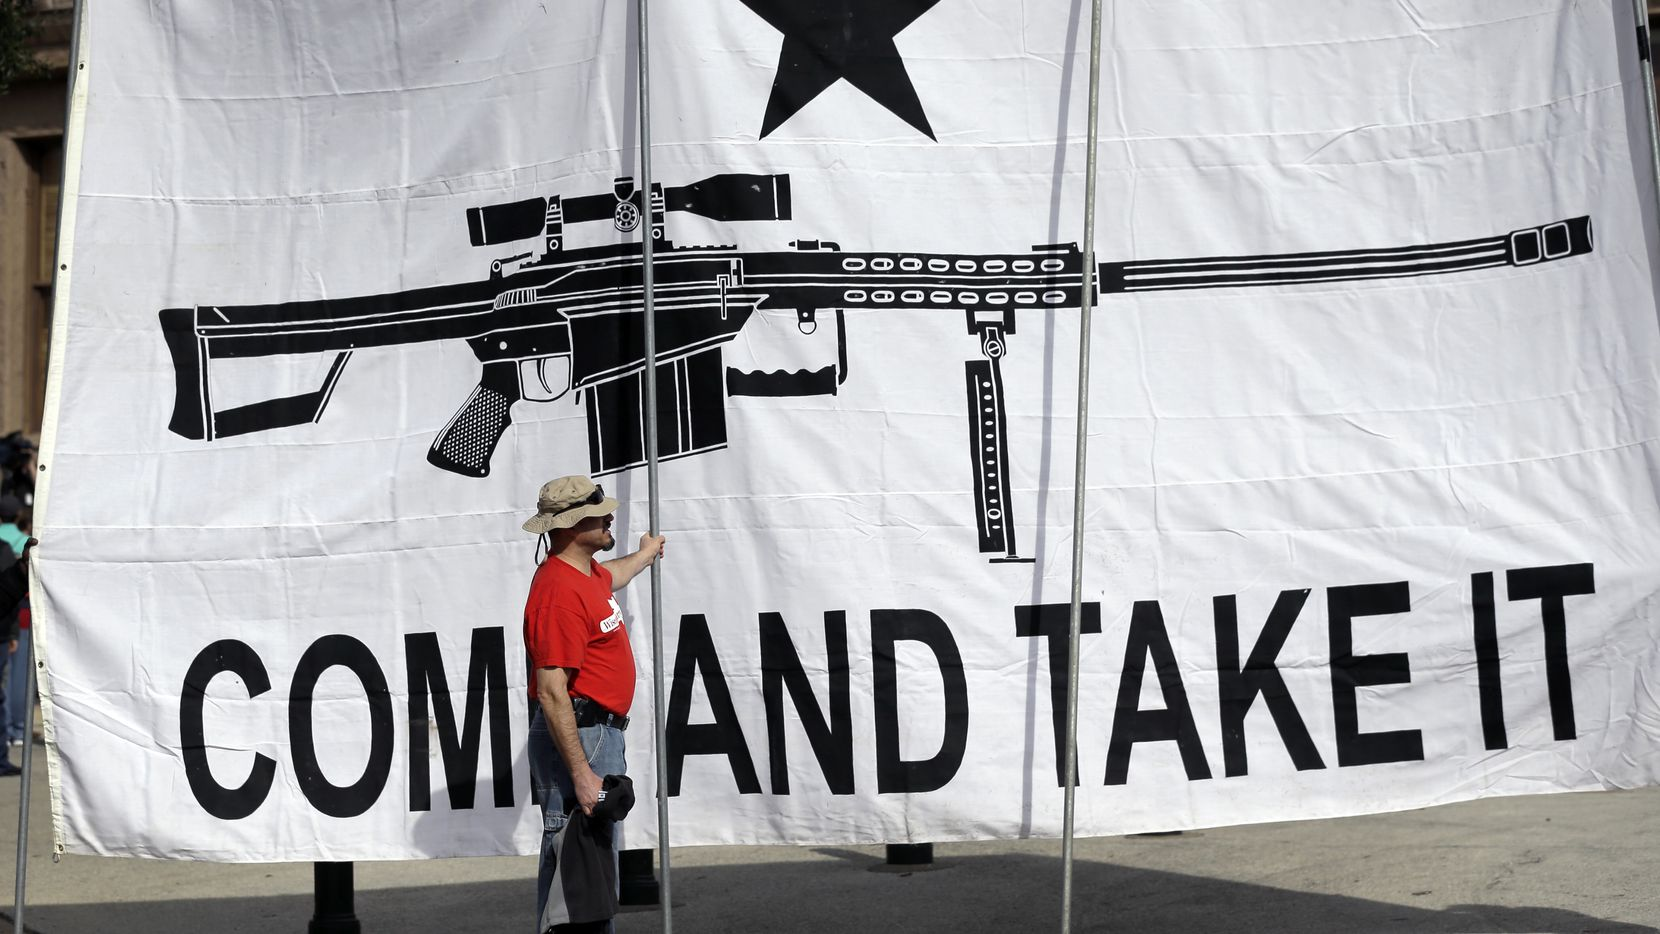 """A demonstrator helps hold a large """"Come and Take It"""" banner at a rally in support of open carry gun laws at the Capitol in Austin in January."""